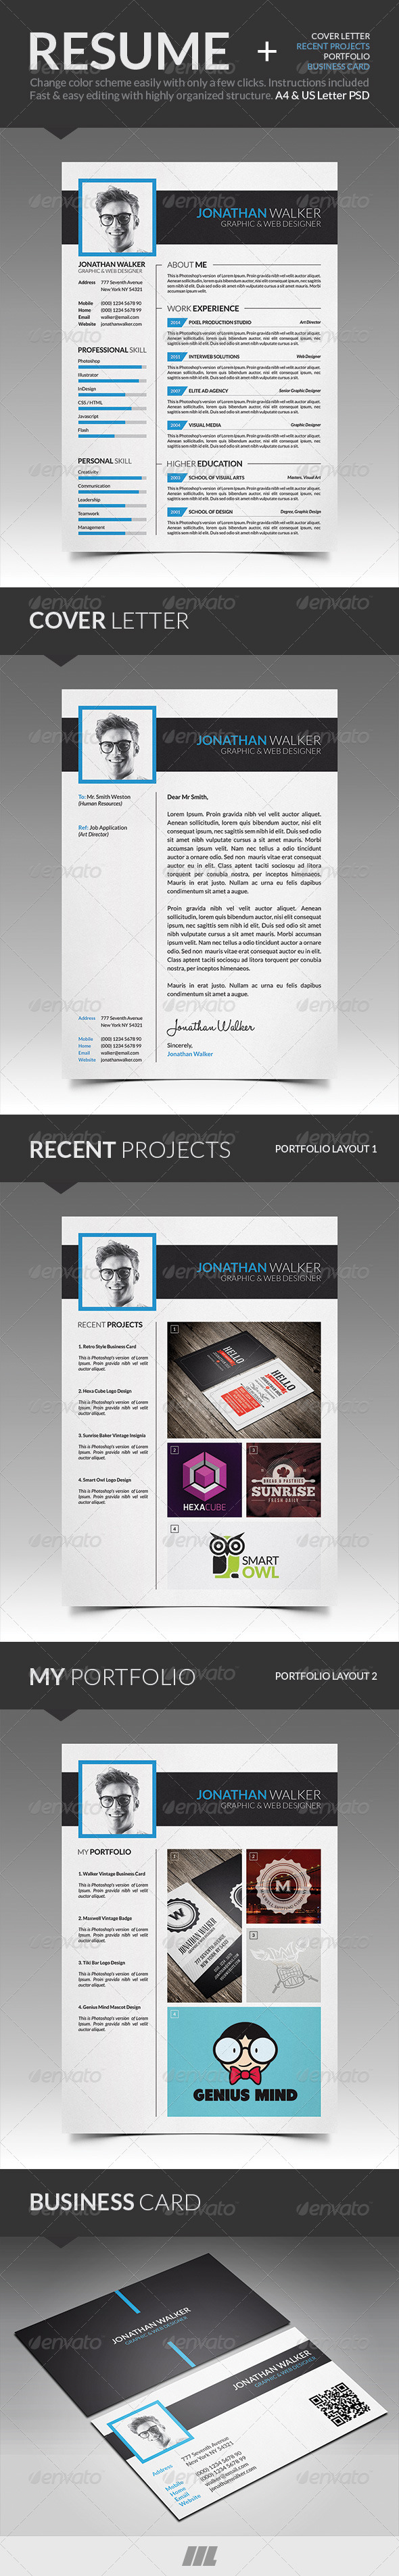 Modern Resume With Business Card